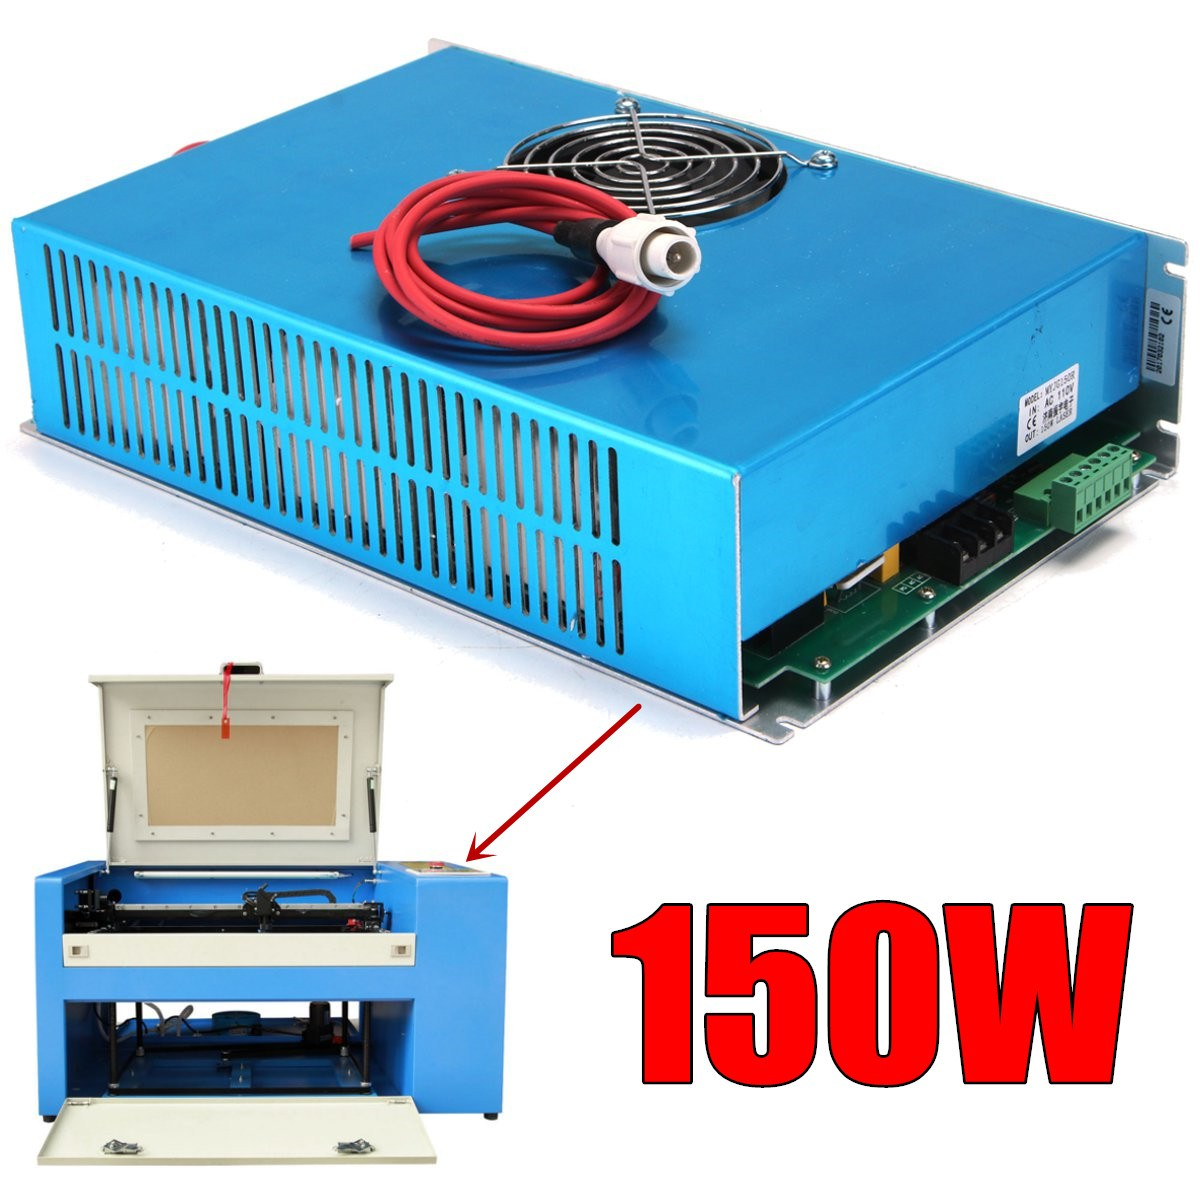 AC 110V 150W Laser Power Supply High Speed Blue for CO2 Laser Engraving Cutting Machine Visible Light with Cable high voltage flyback transformer for co2 50w laser power supply